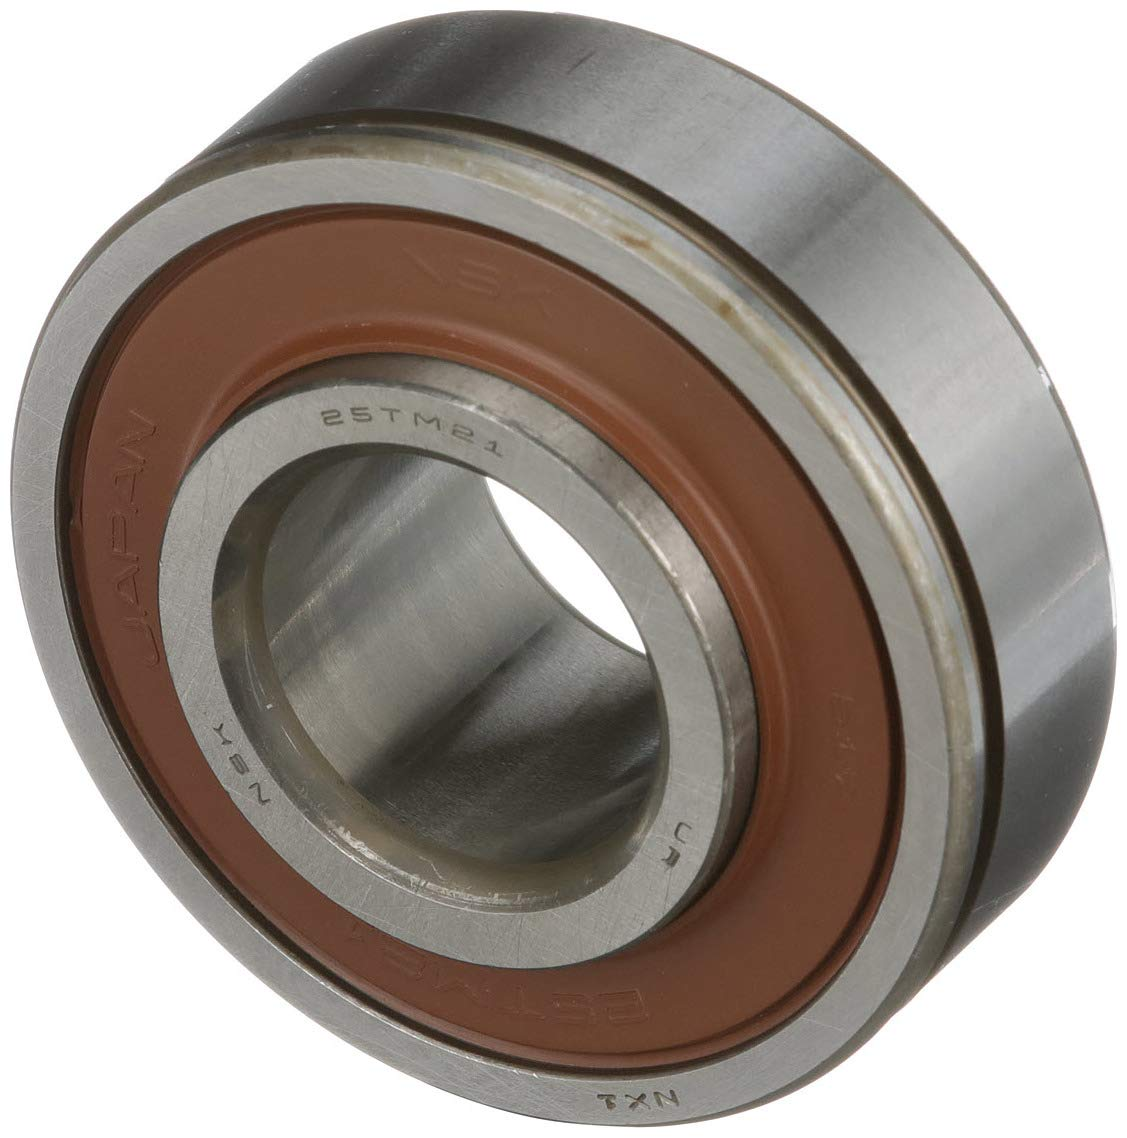 NSK 25TM21NXC3 Manual Transmission Countershaft Bearing